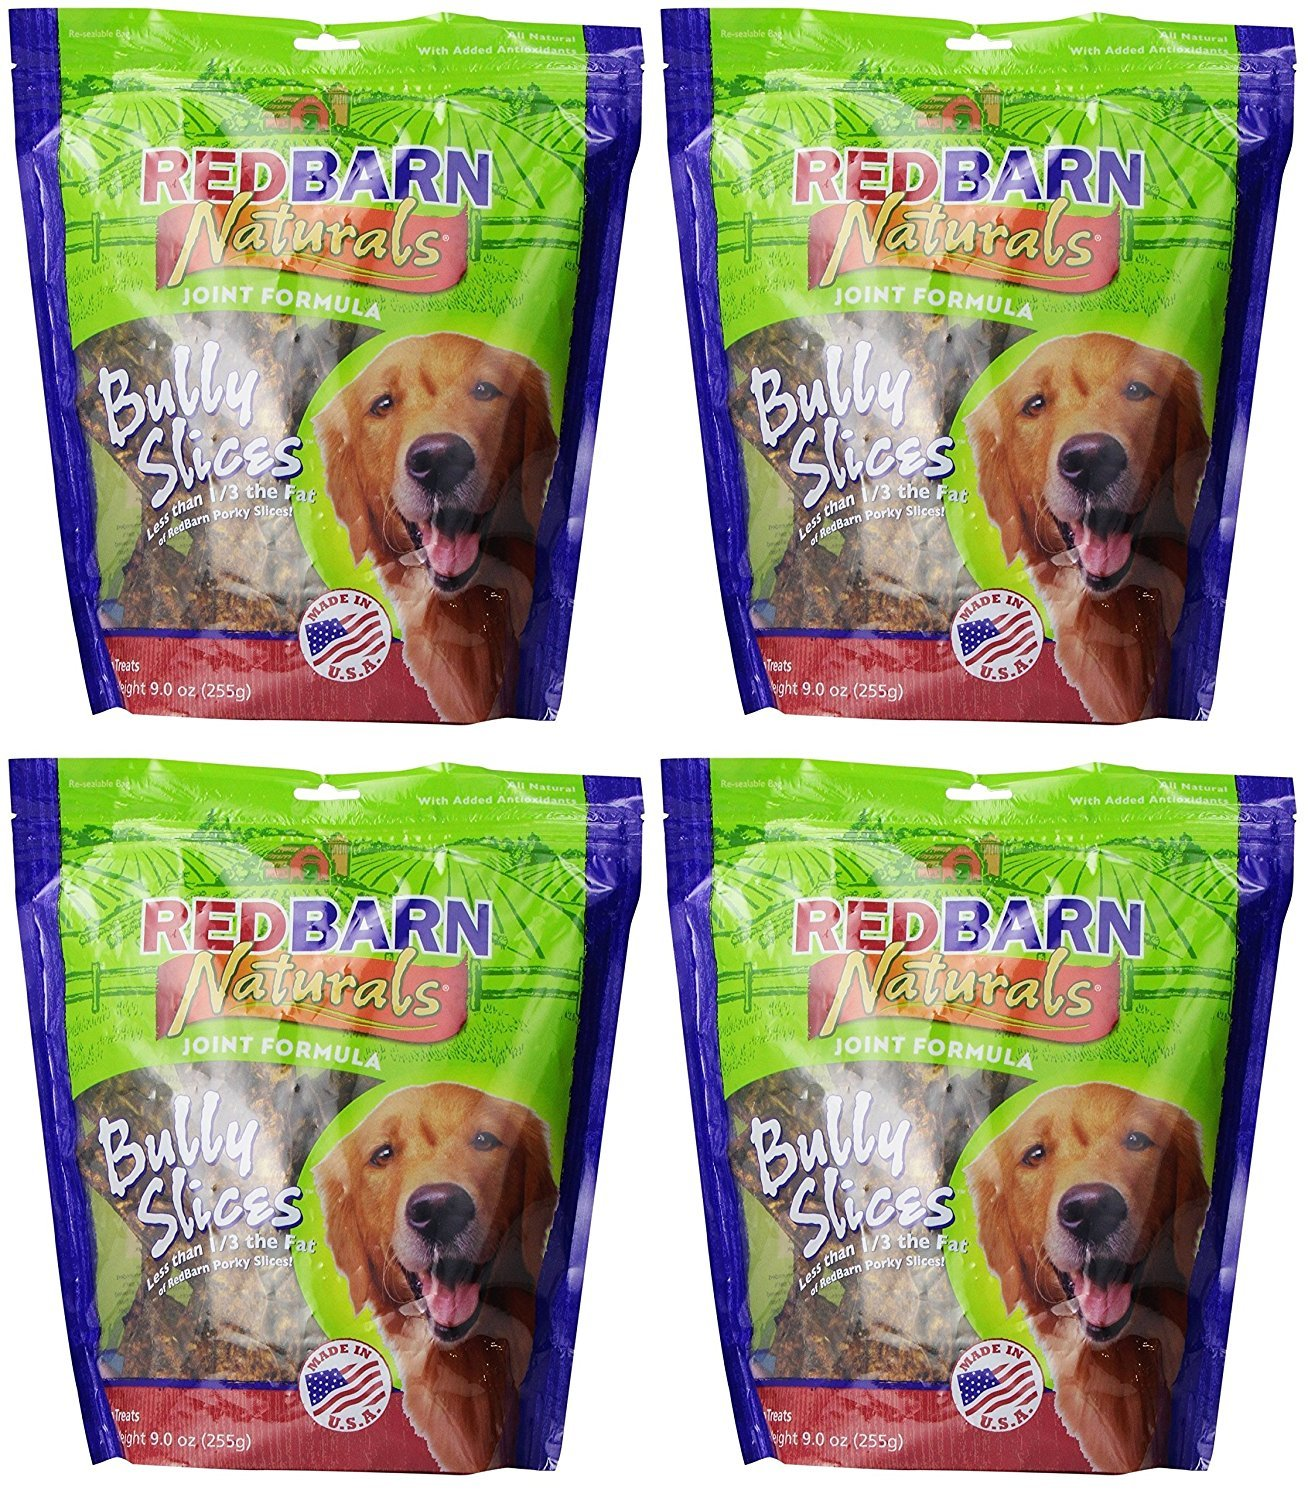 small red dog cheese dipped redbarn barn food grain whitedogbone barns treats com biscuit free biscuits